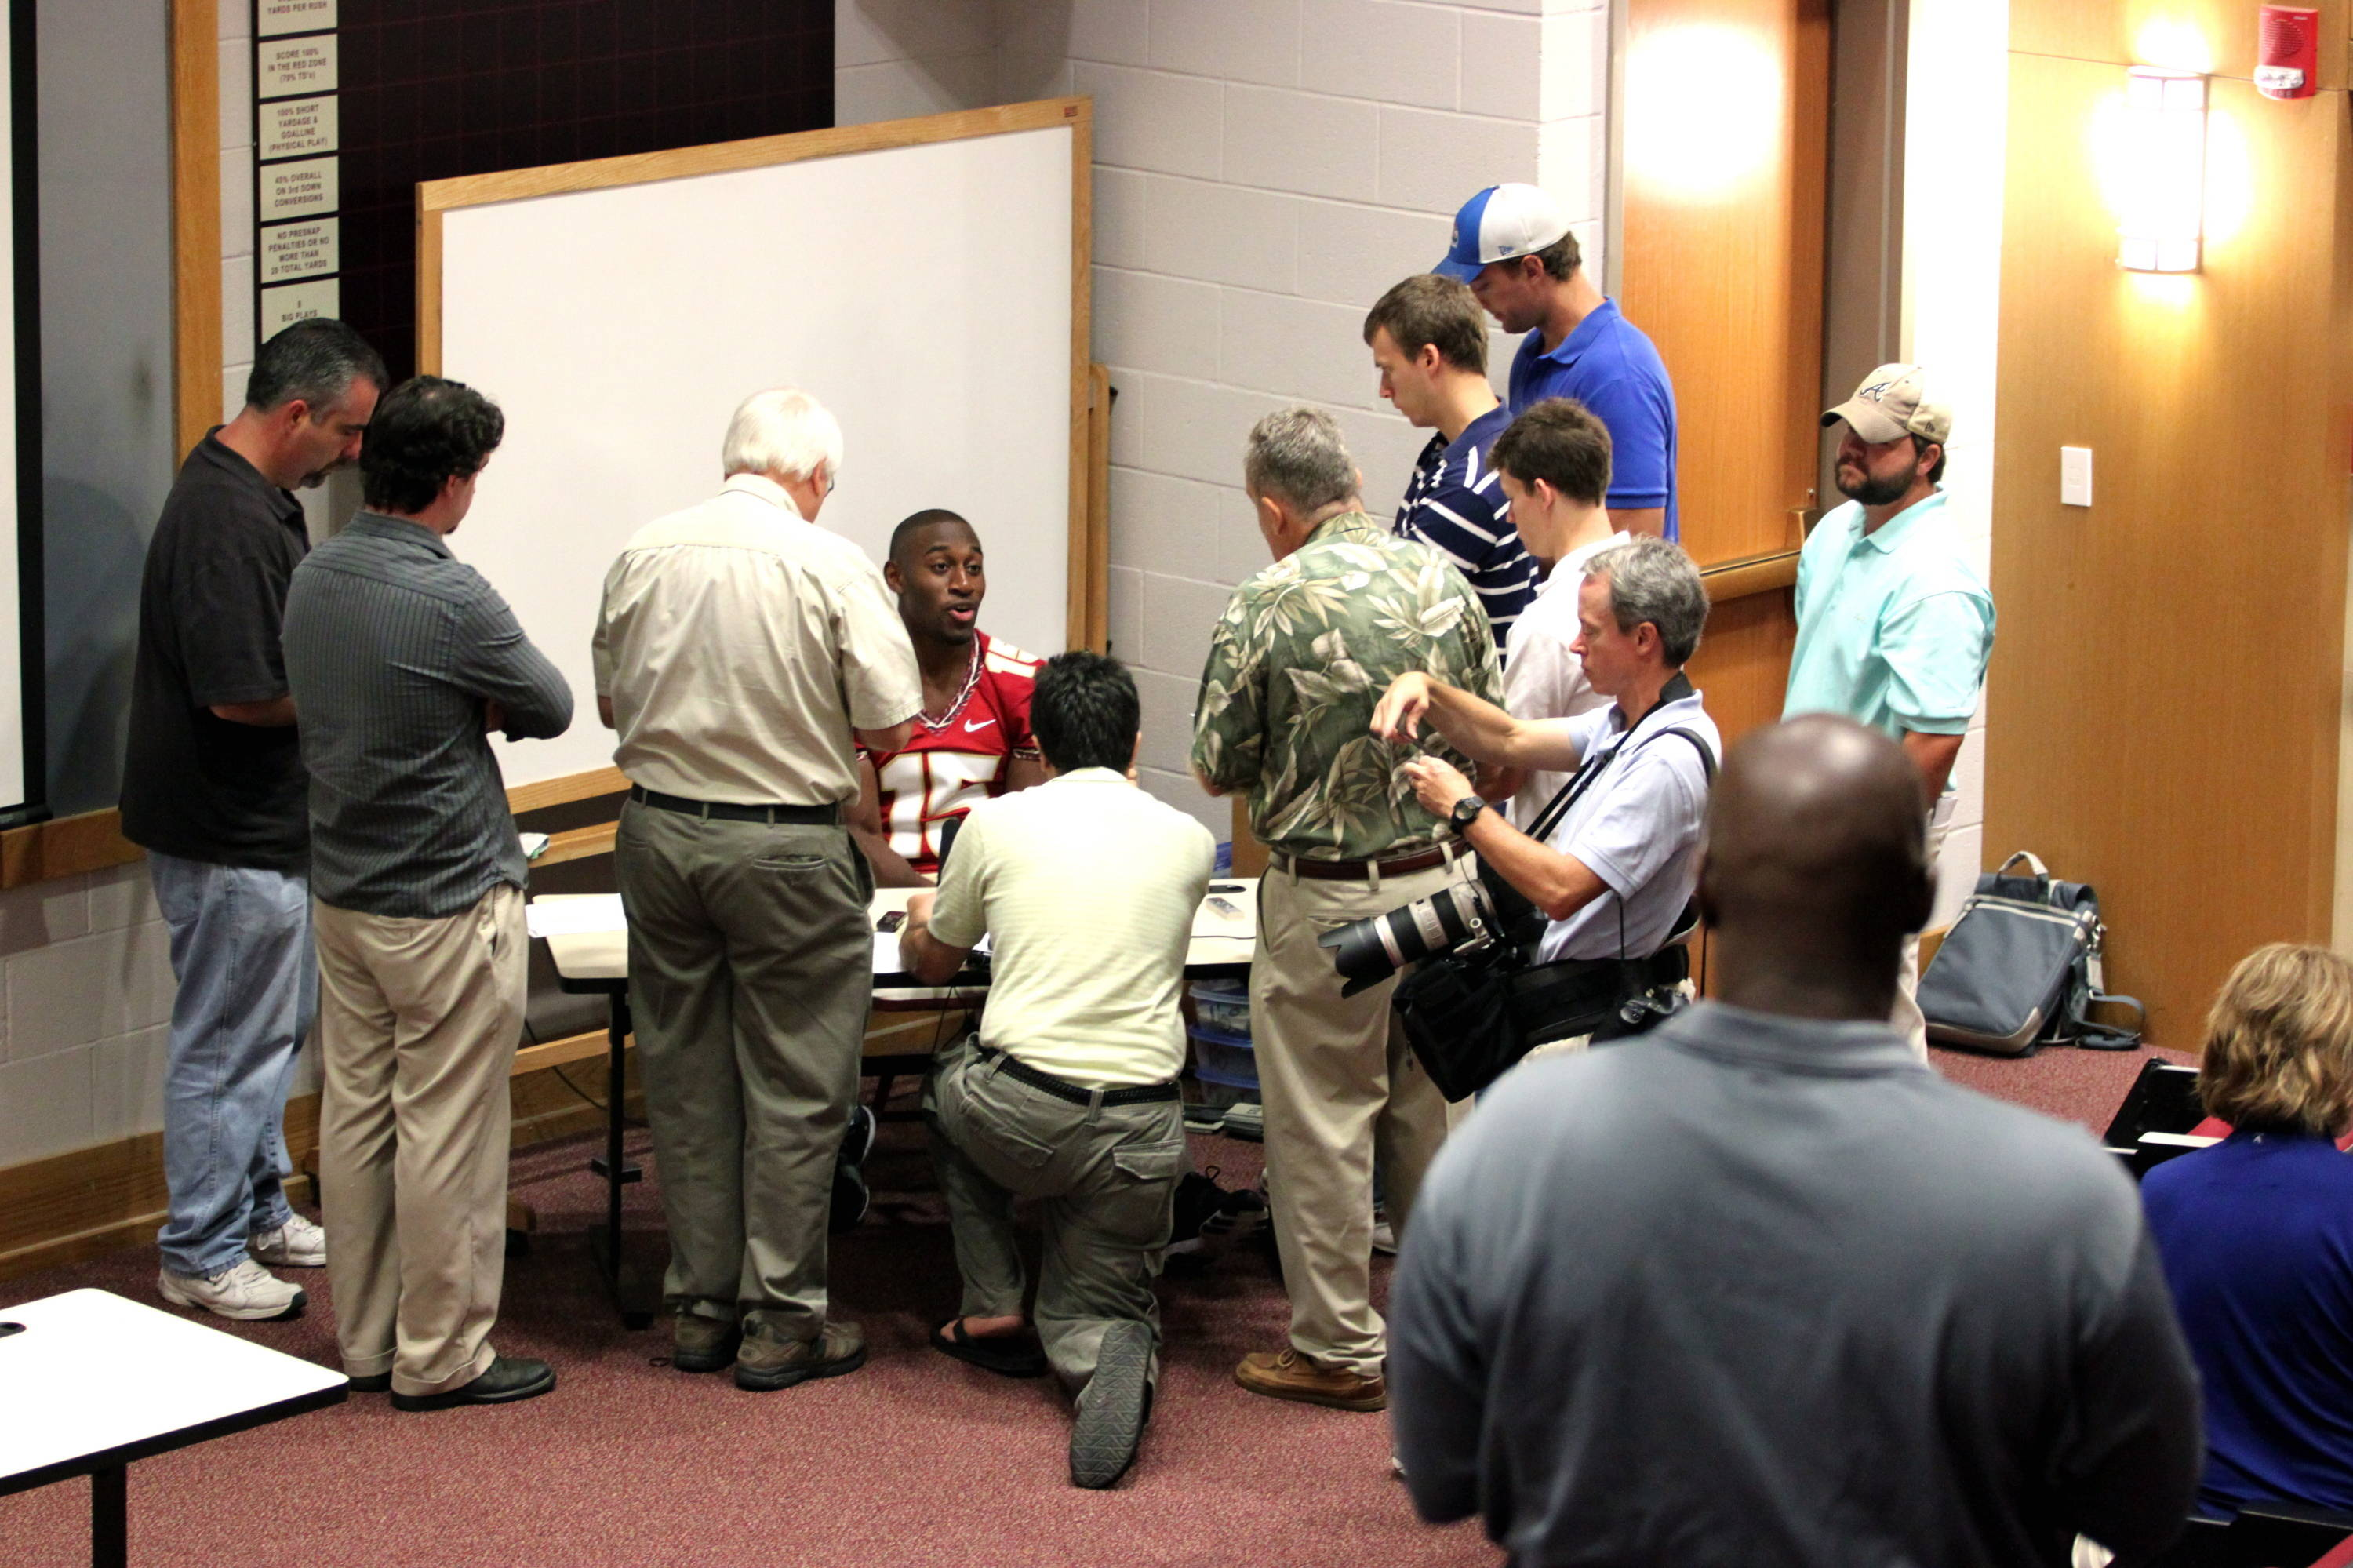 Ochuko Jenije (15) meeting with the print media at football media day.